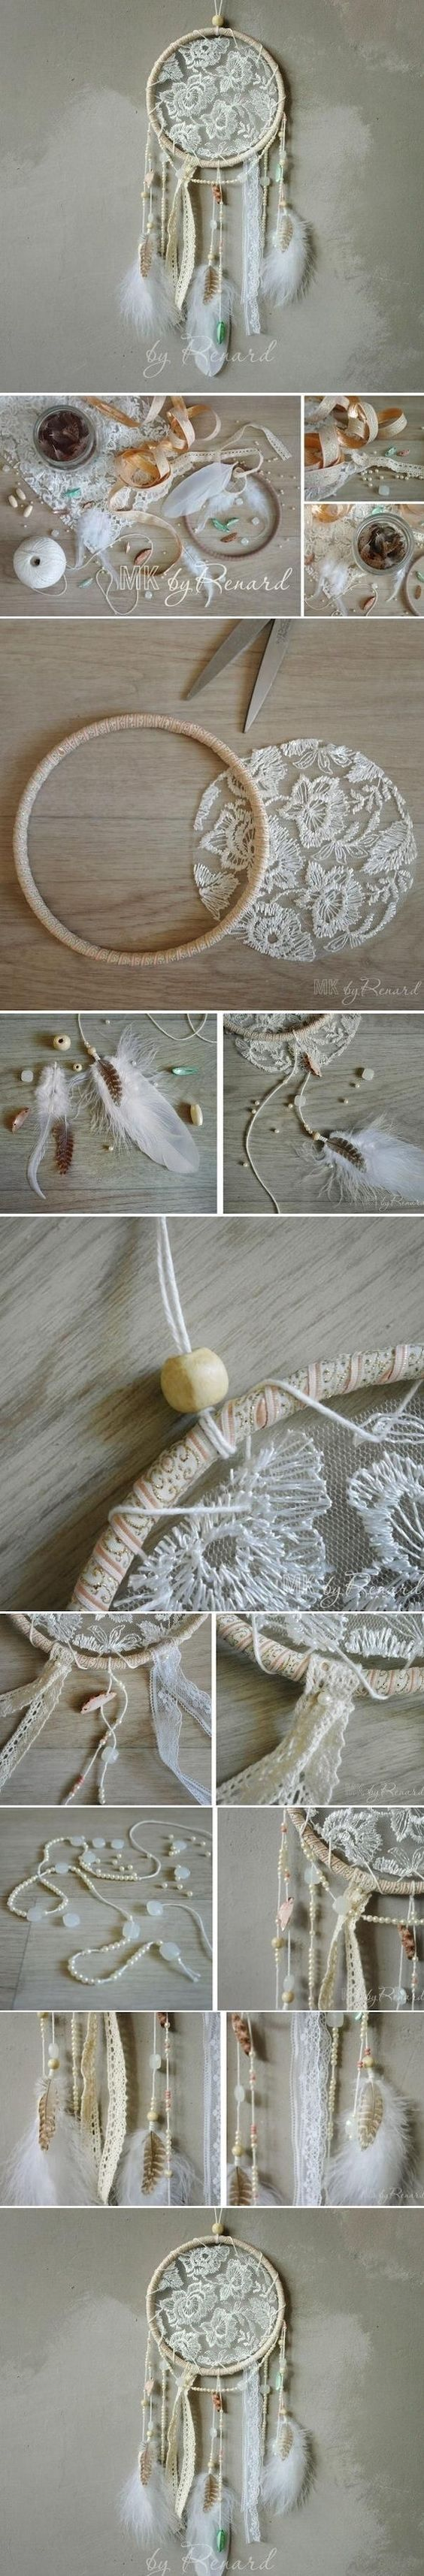 Diy Dream Catcher Pictures, Photos, and Images for Facebook, Tumblr, Pinterest, and Twitter: